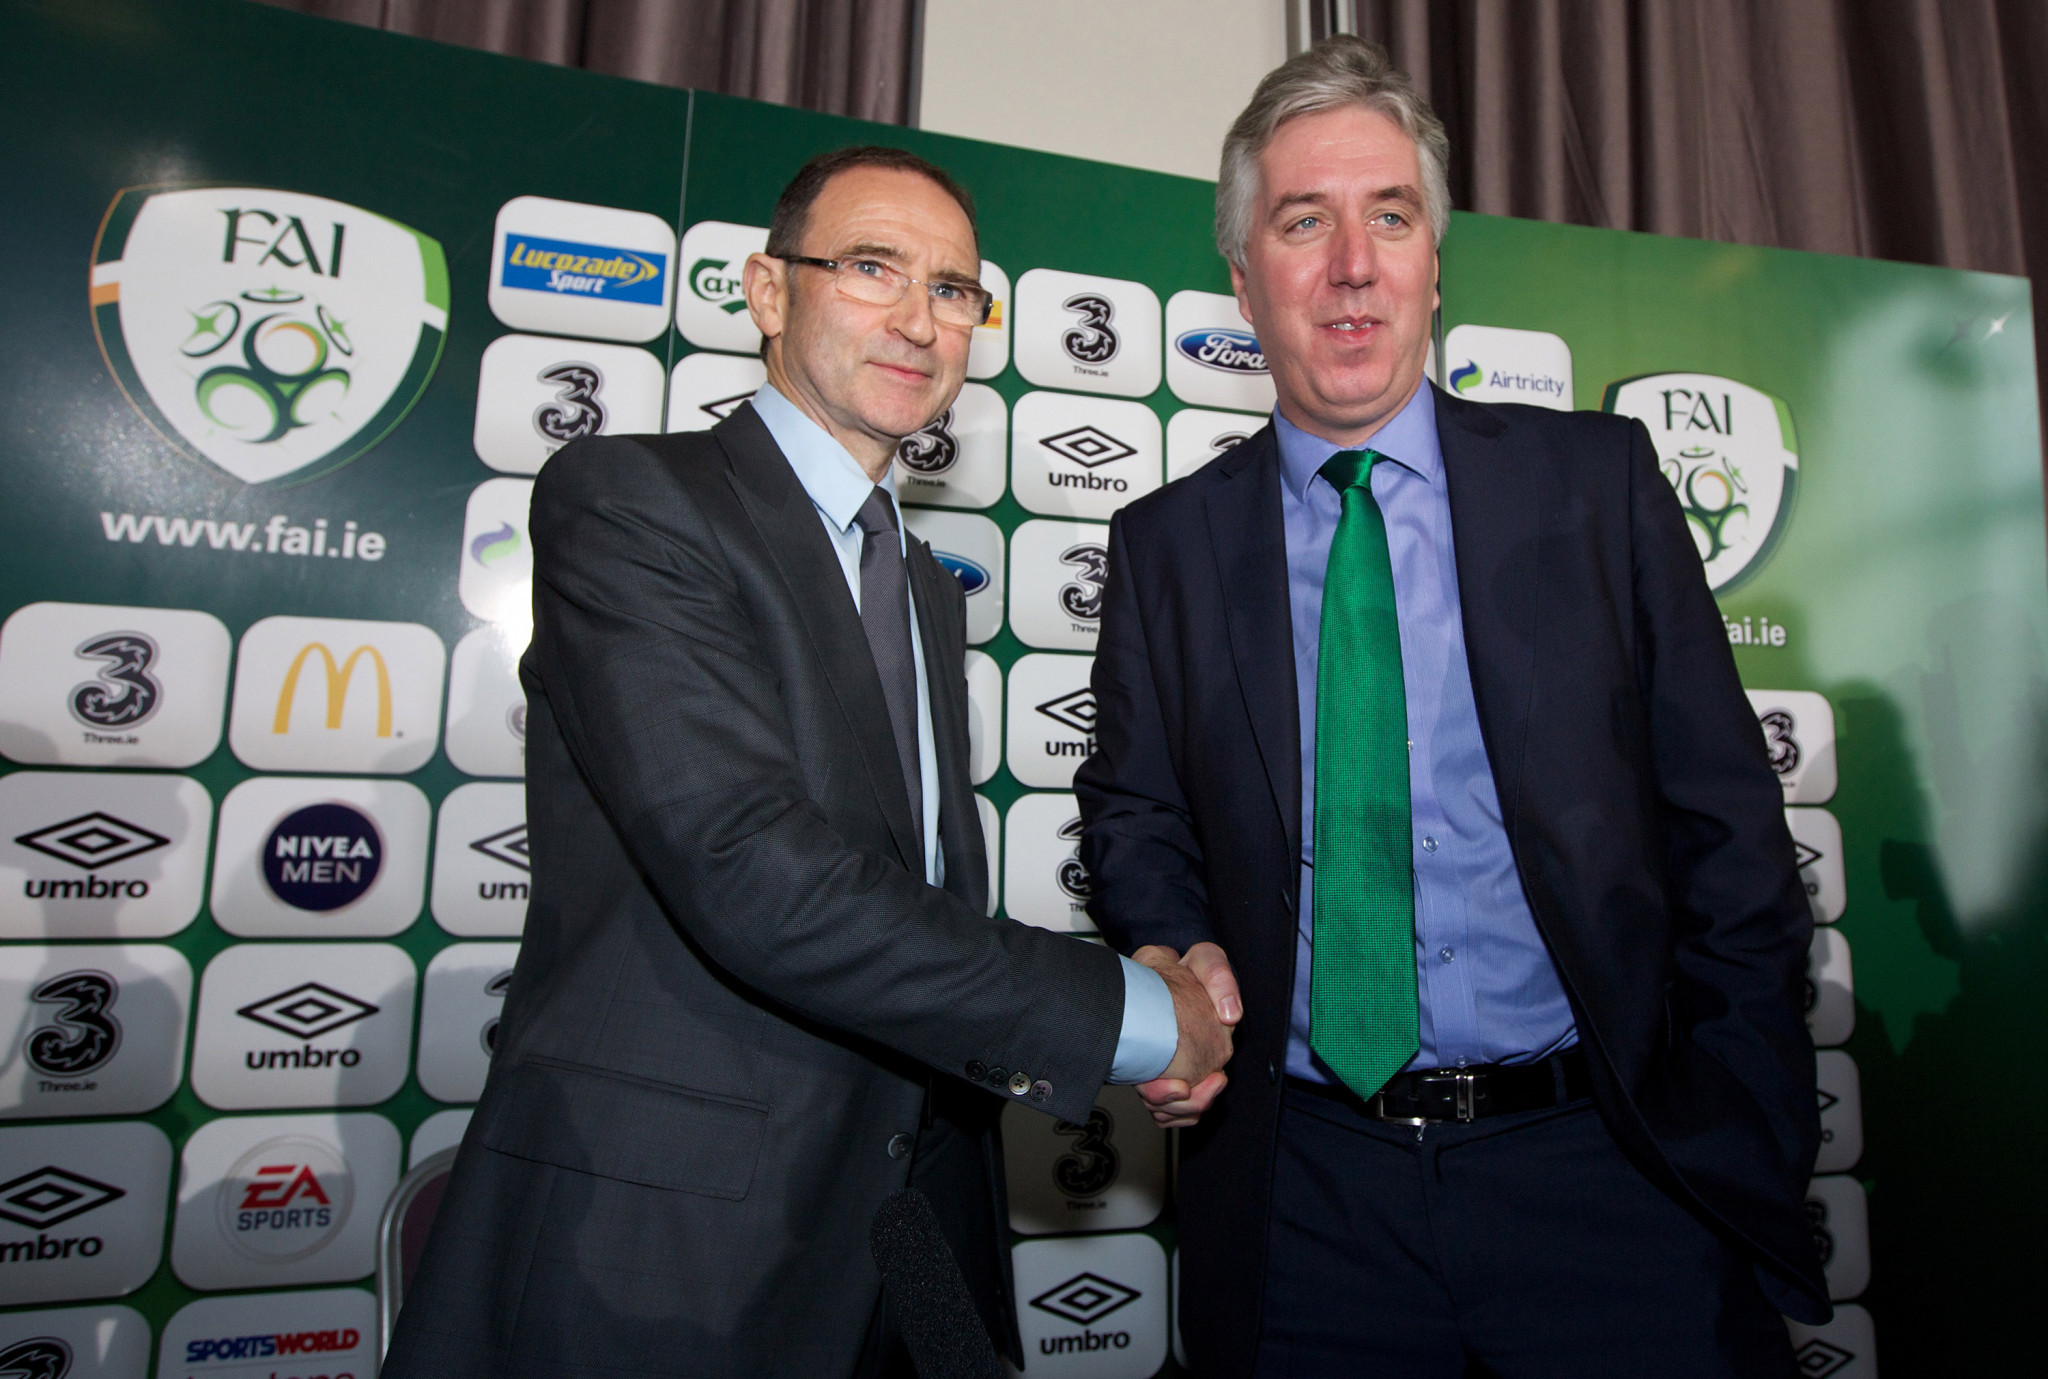 John Delaney, former chief executive of the FAI, shaking hands with newly appointed Ireland manager Martin O'Neill in 2013 ©Getty Images